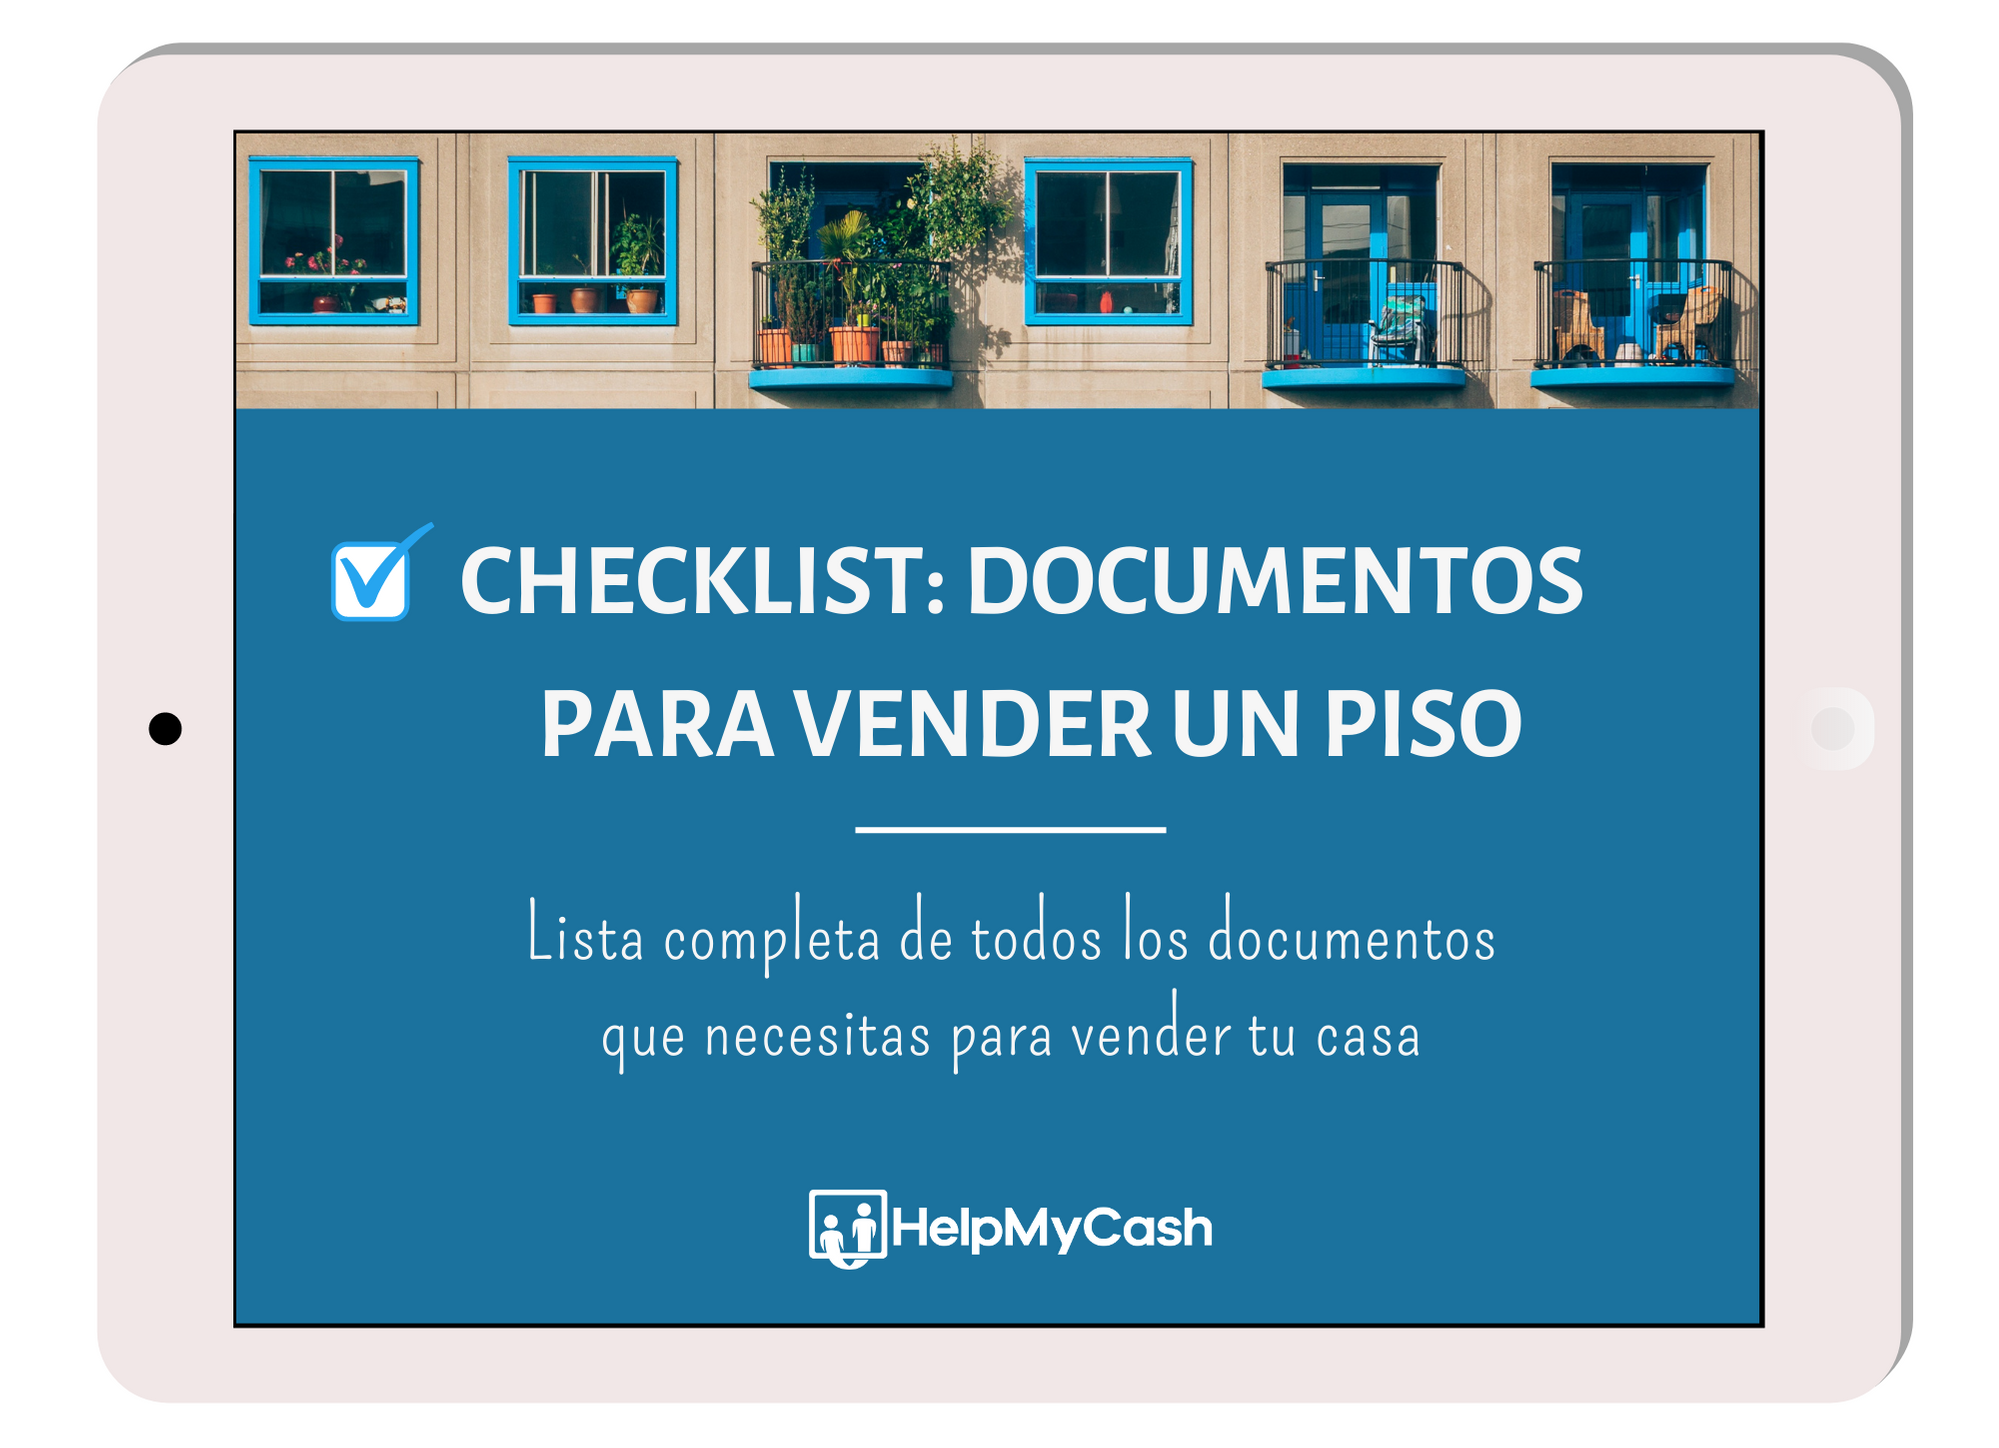 Checklist: documentos para vender un piso